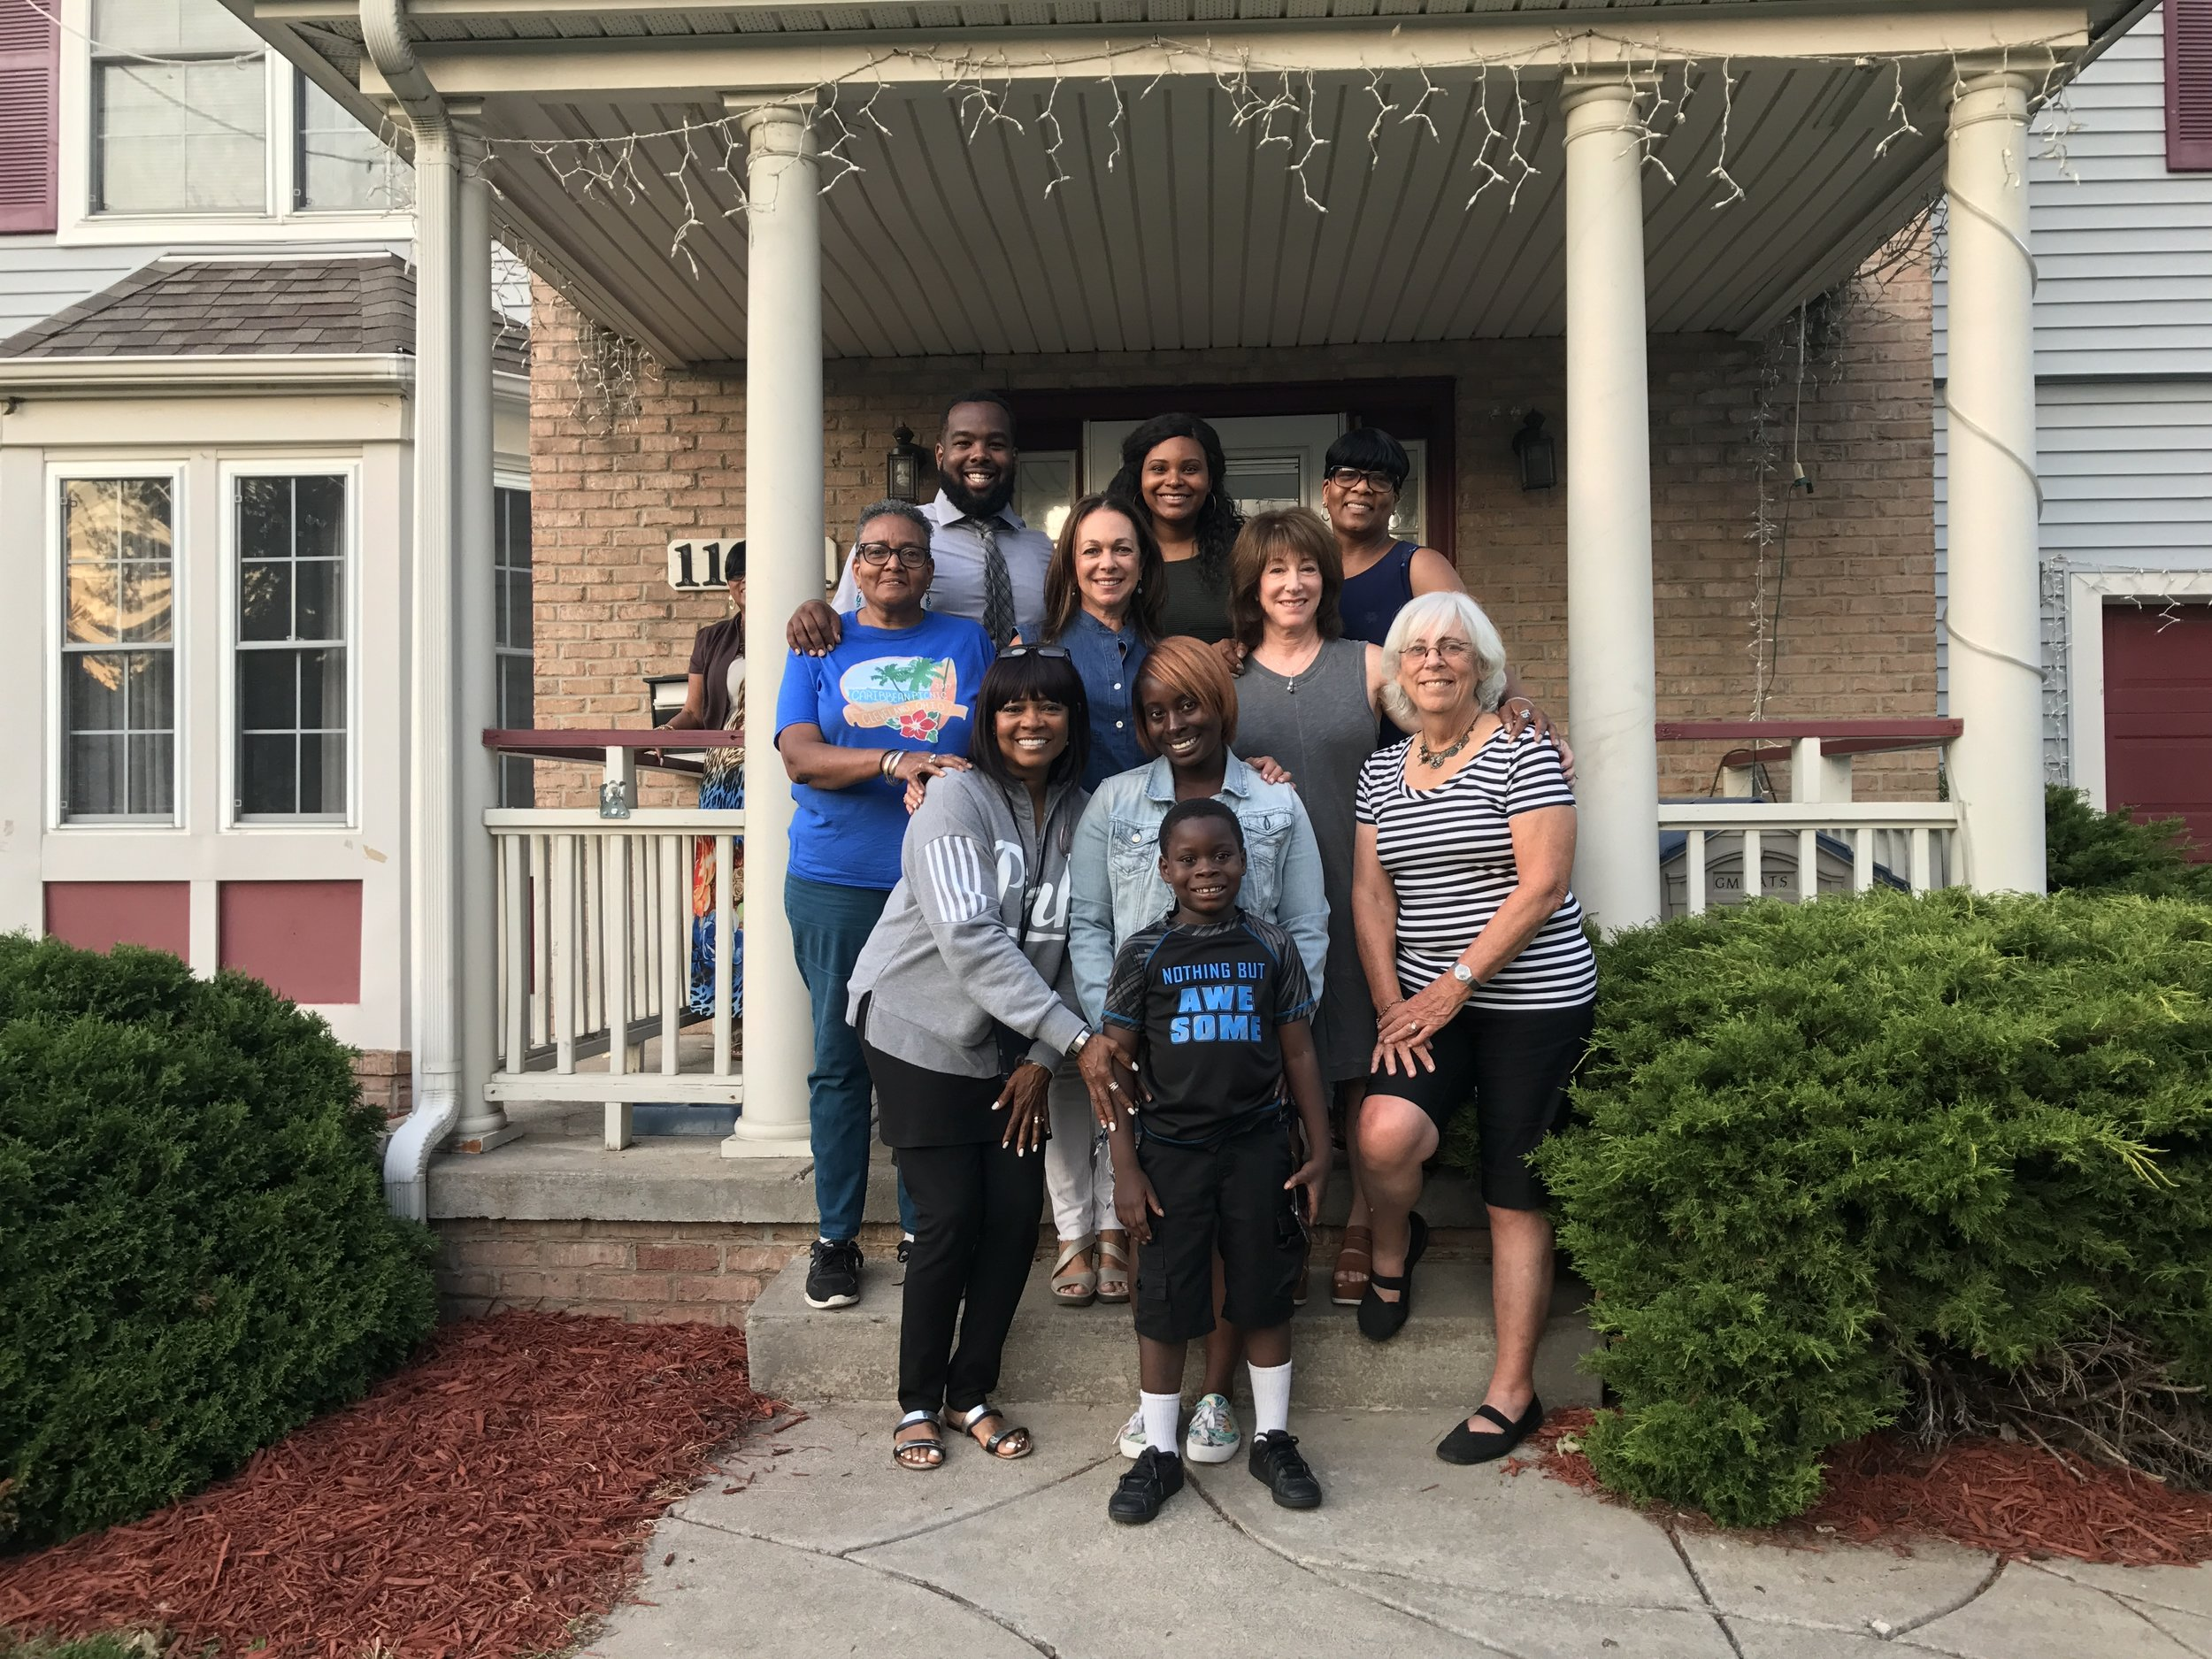 What we do - We connect young adults & young families to groups of committed volunteers from the community. We want to build permanent supportive relationships that transform lives around our region.Learn More